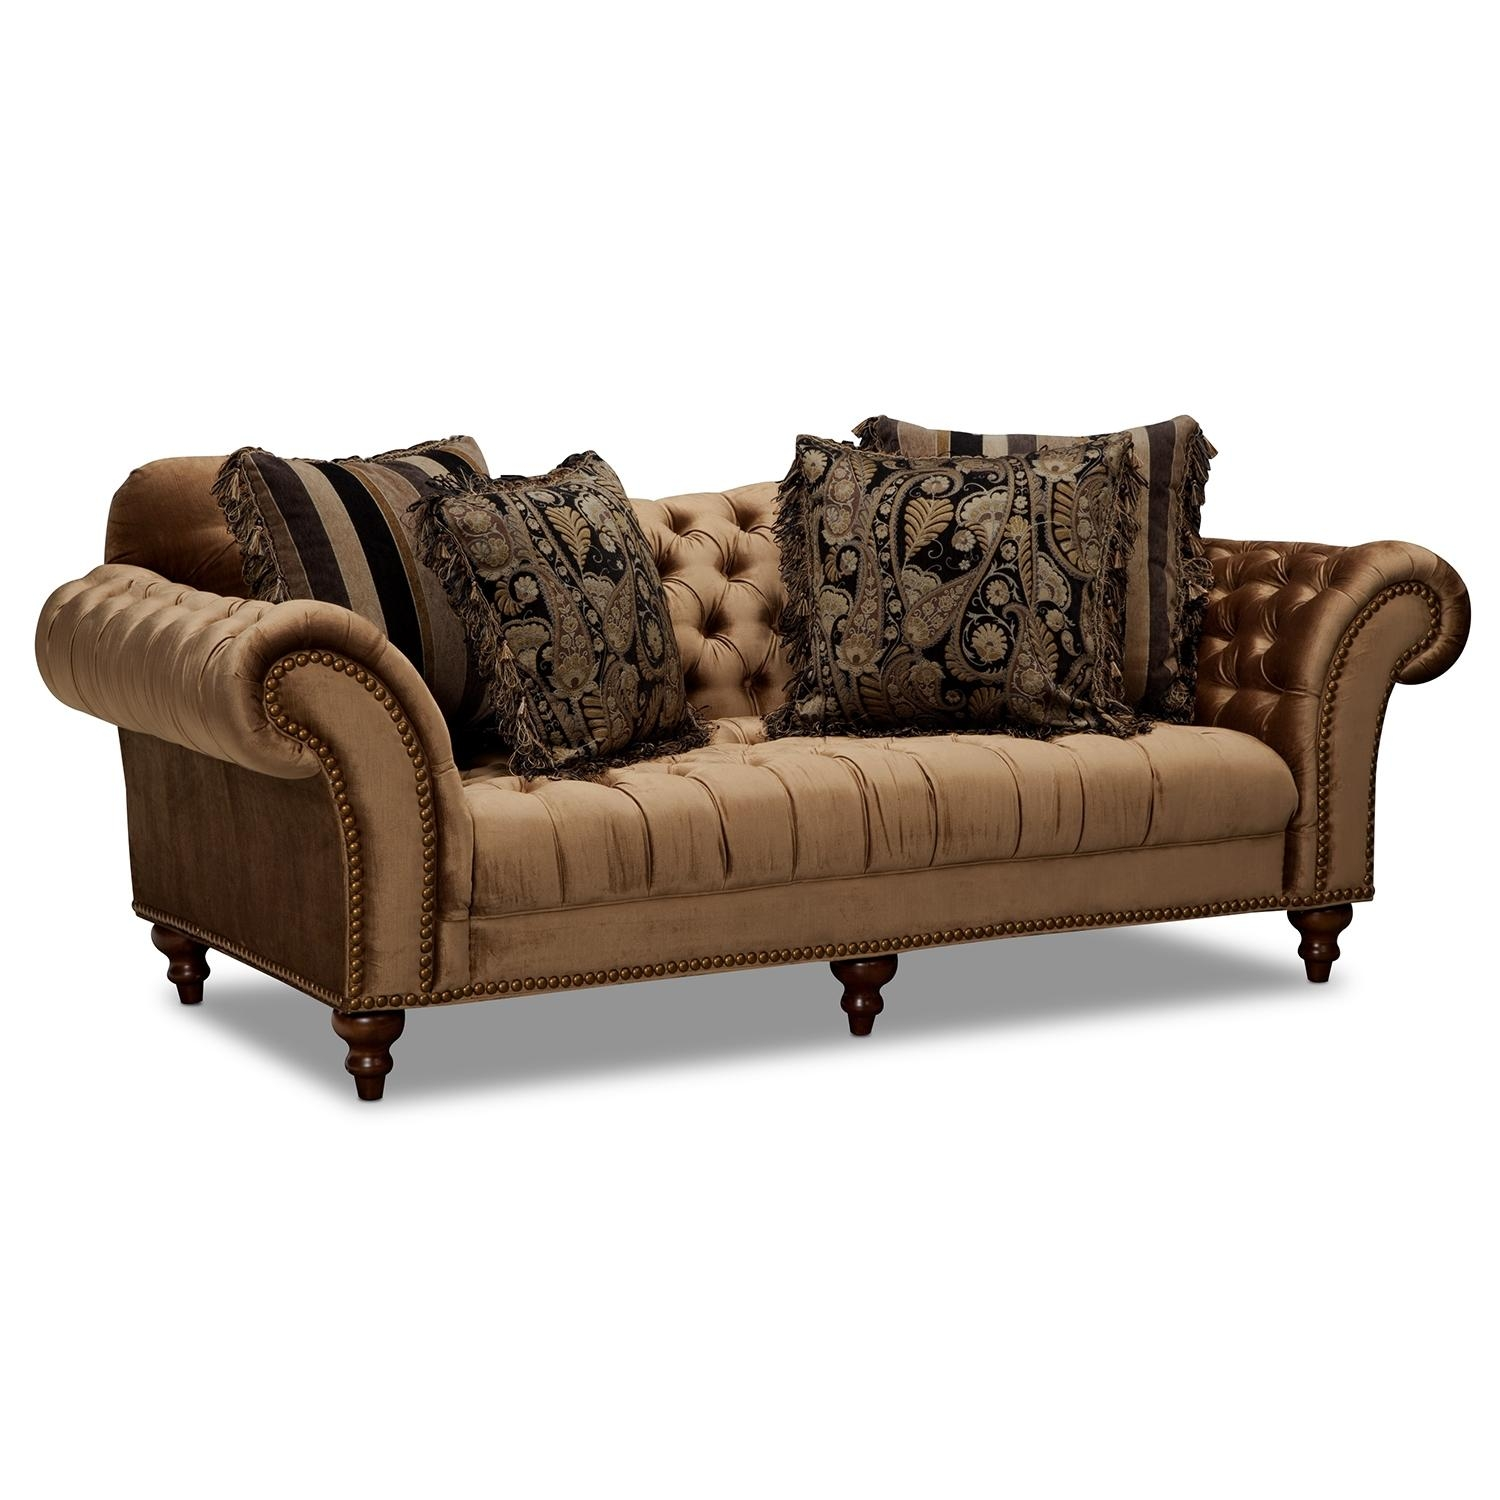 Marvelous Value City Furniture Living Room Sets For Home – 5 Piece For Value City Sofas (View 17 of 20)